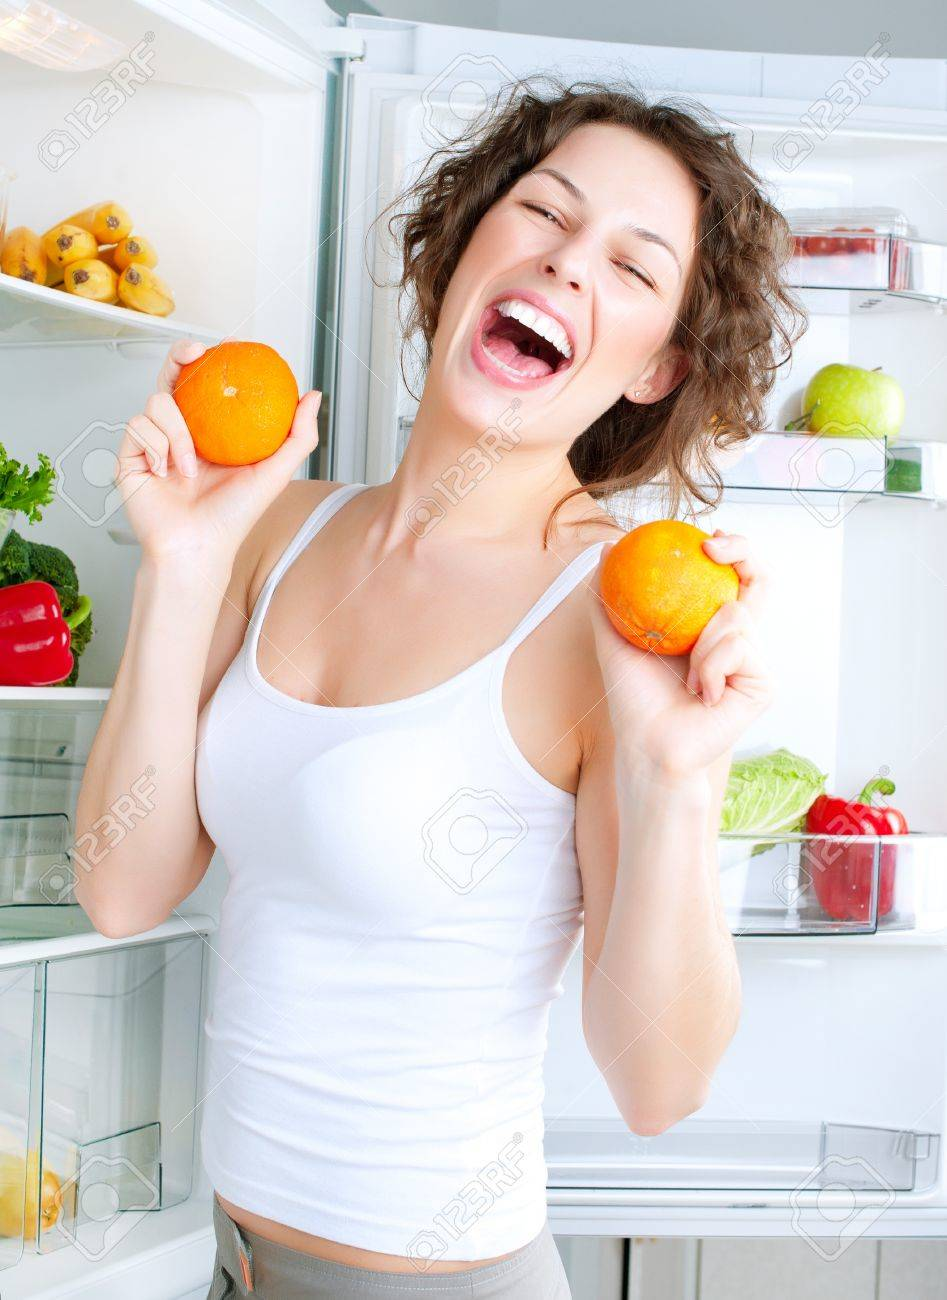 Beautiful Young Woman near the Refrigerator with healthy food Stock Photo - 14054142